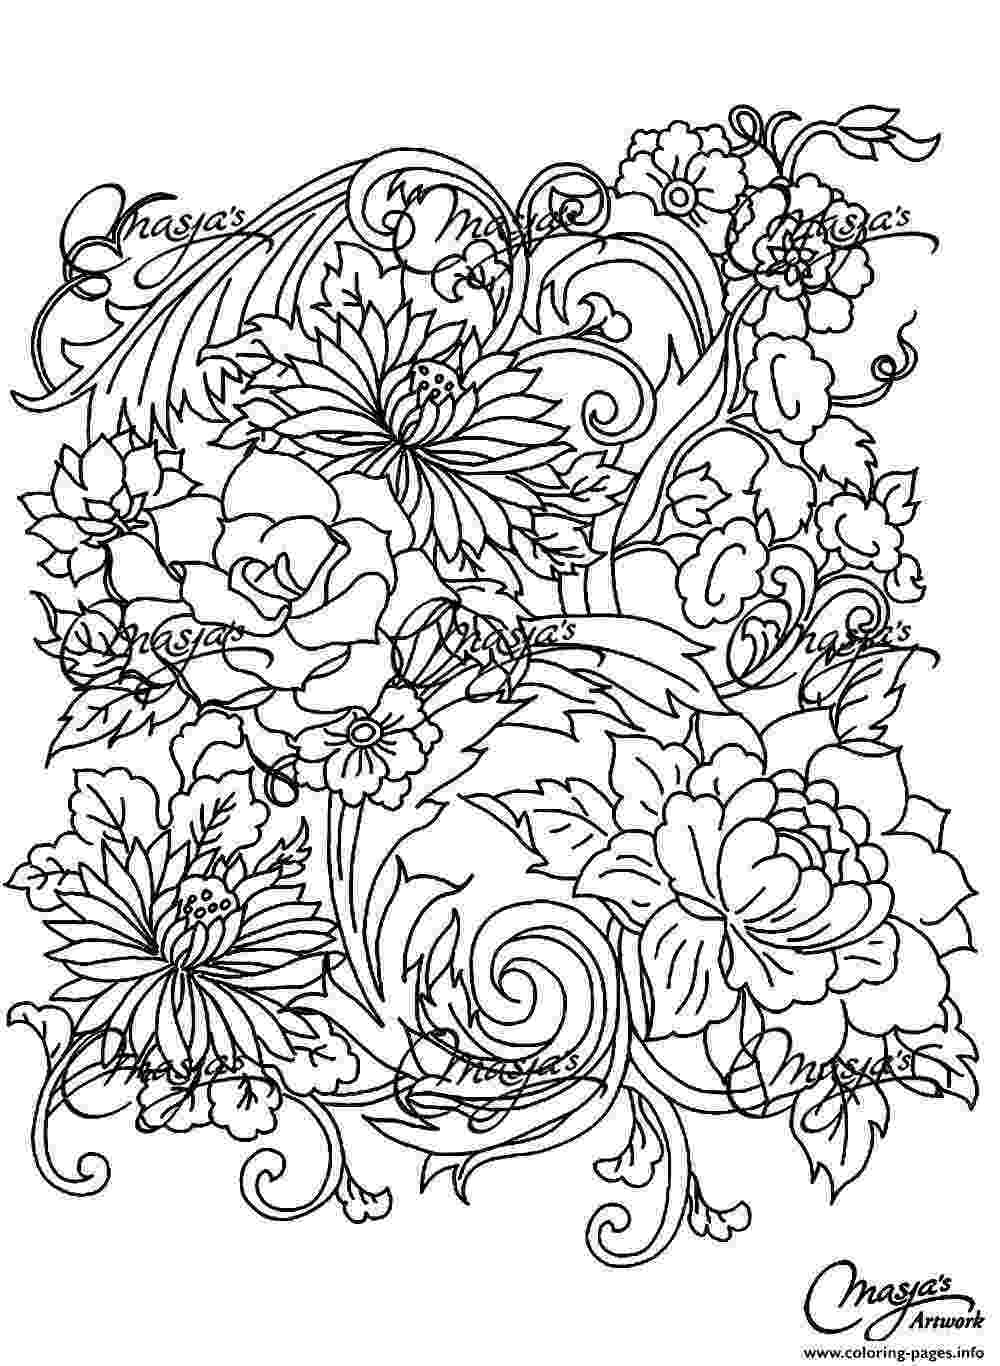 printable flower coloring pages for adults butterflies on flowers coloring page free printable printable pages for adults coloring flower